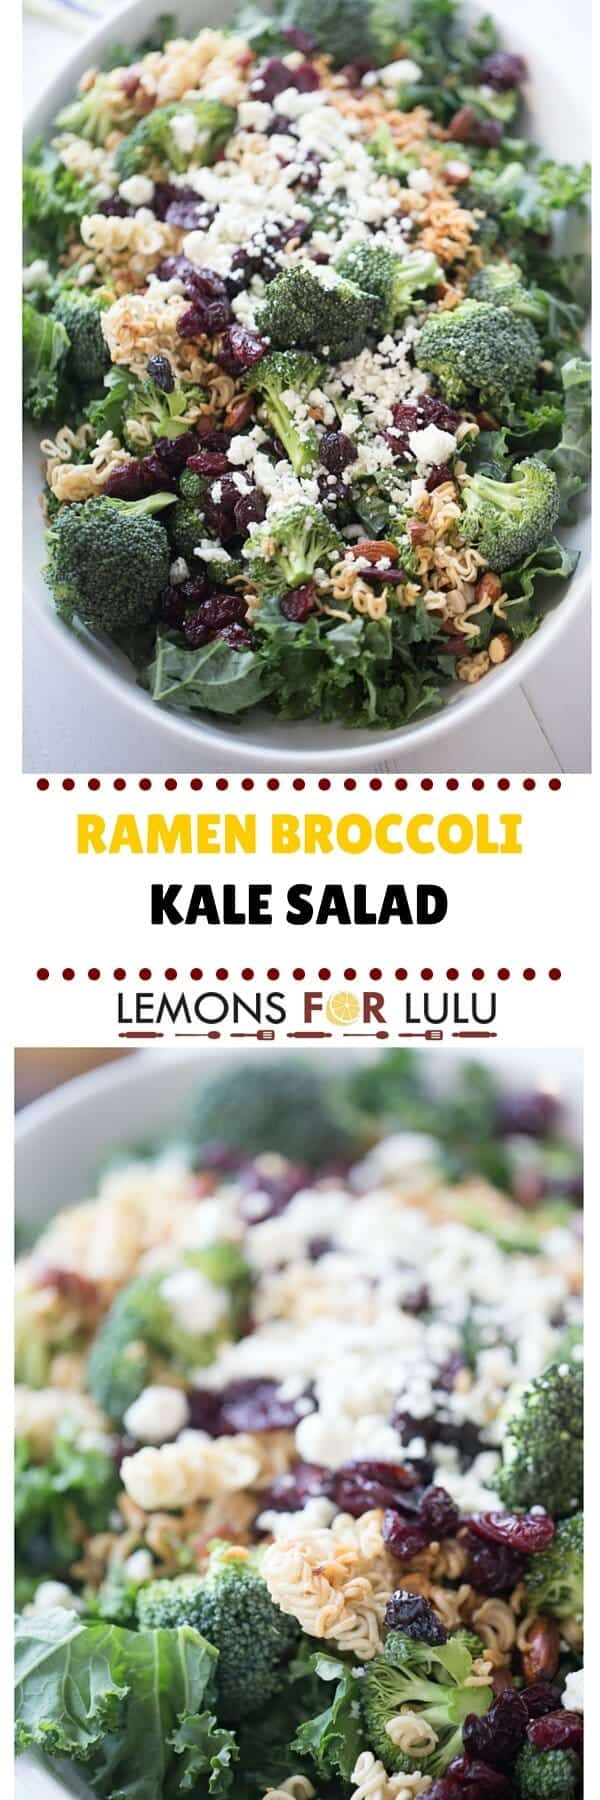 Ramen broccoli salad recipe with krispy kale, sweet cherries, almonds and blue cheese! This is the salad to end all ramen salads!